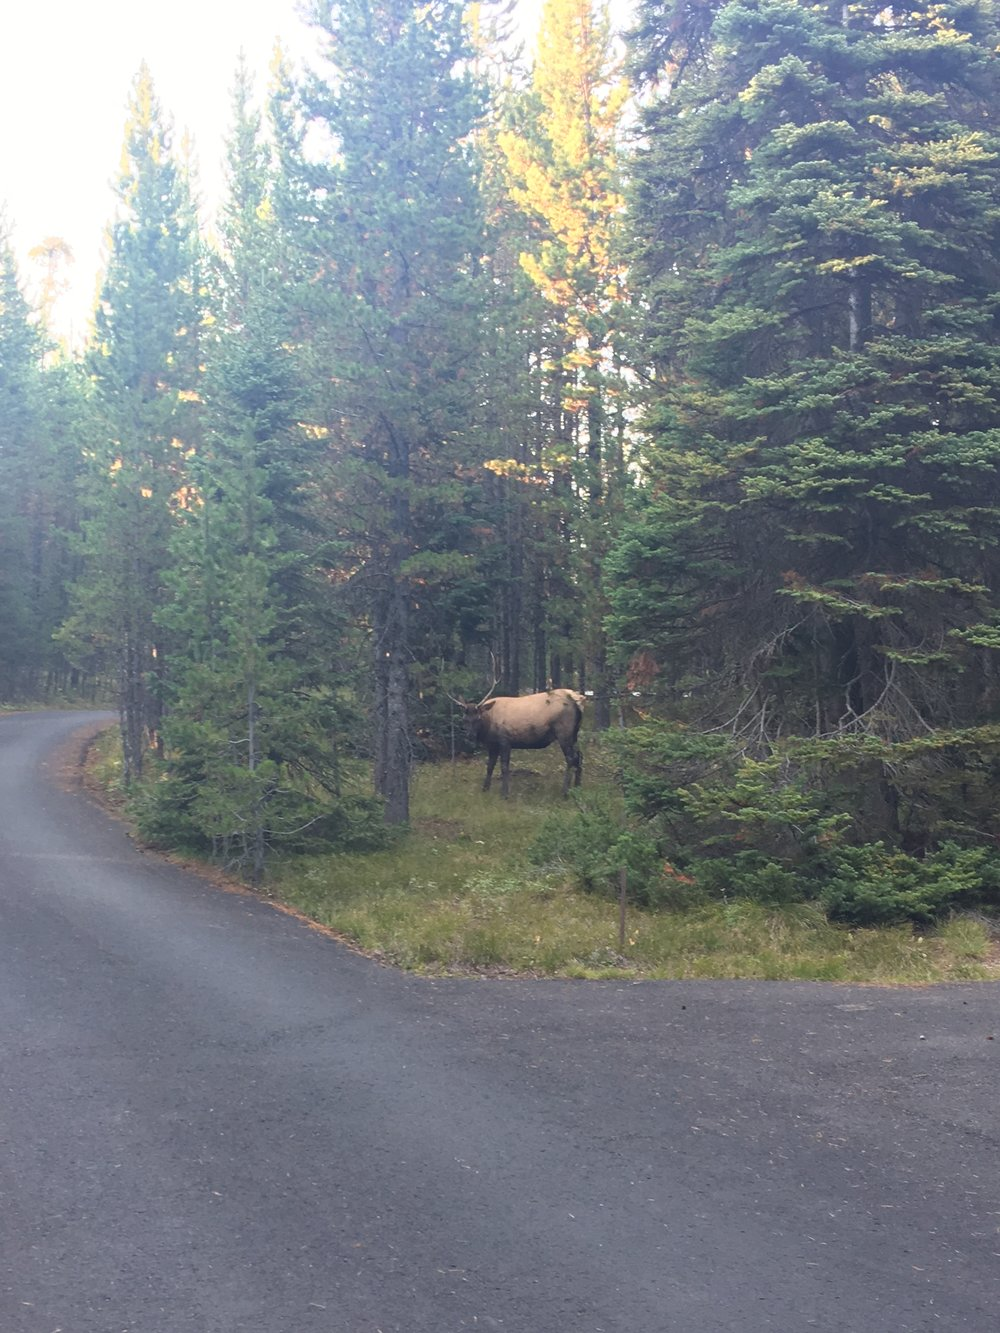 Resident Elk that visited our campsite! We stayed at Bridge Bay Campground and stayed at Jenny Lake during our last visit.